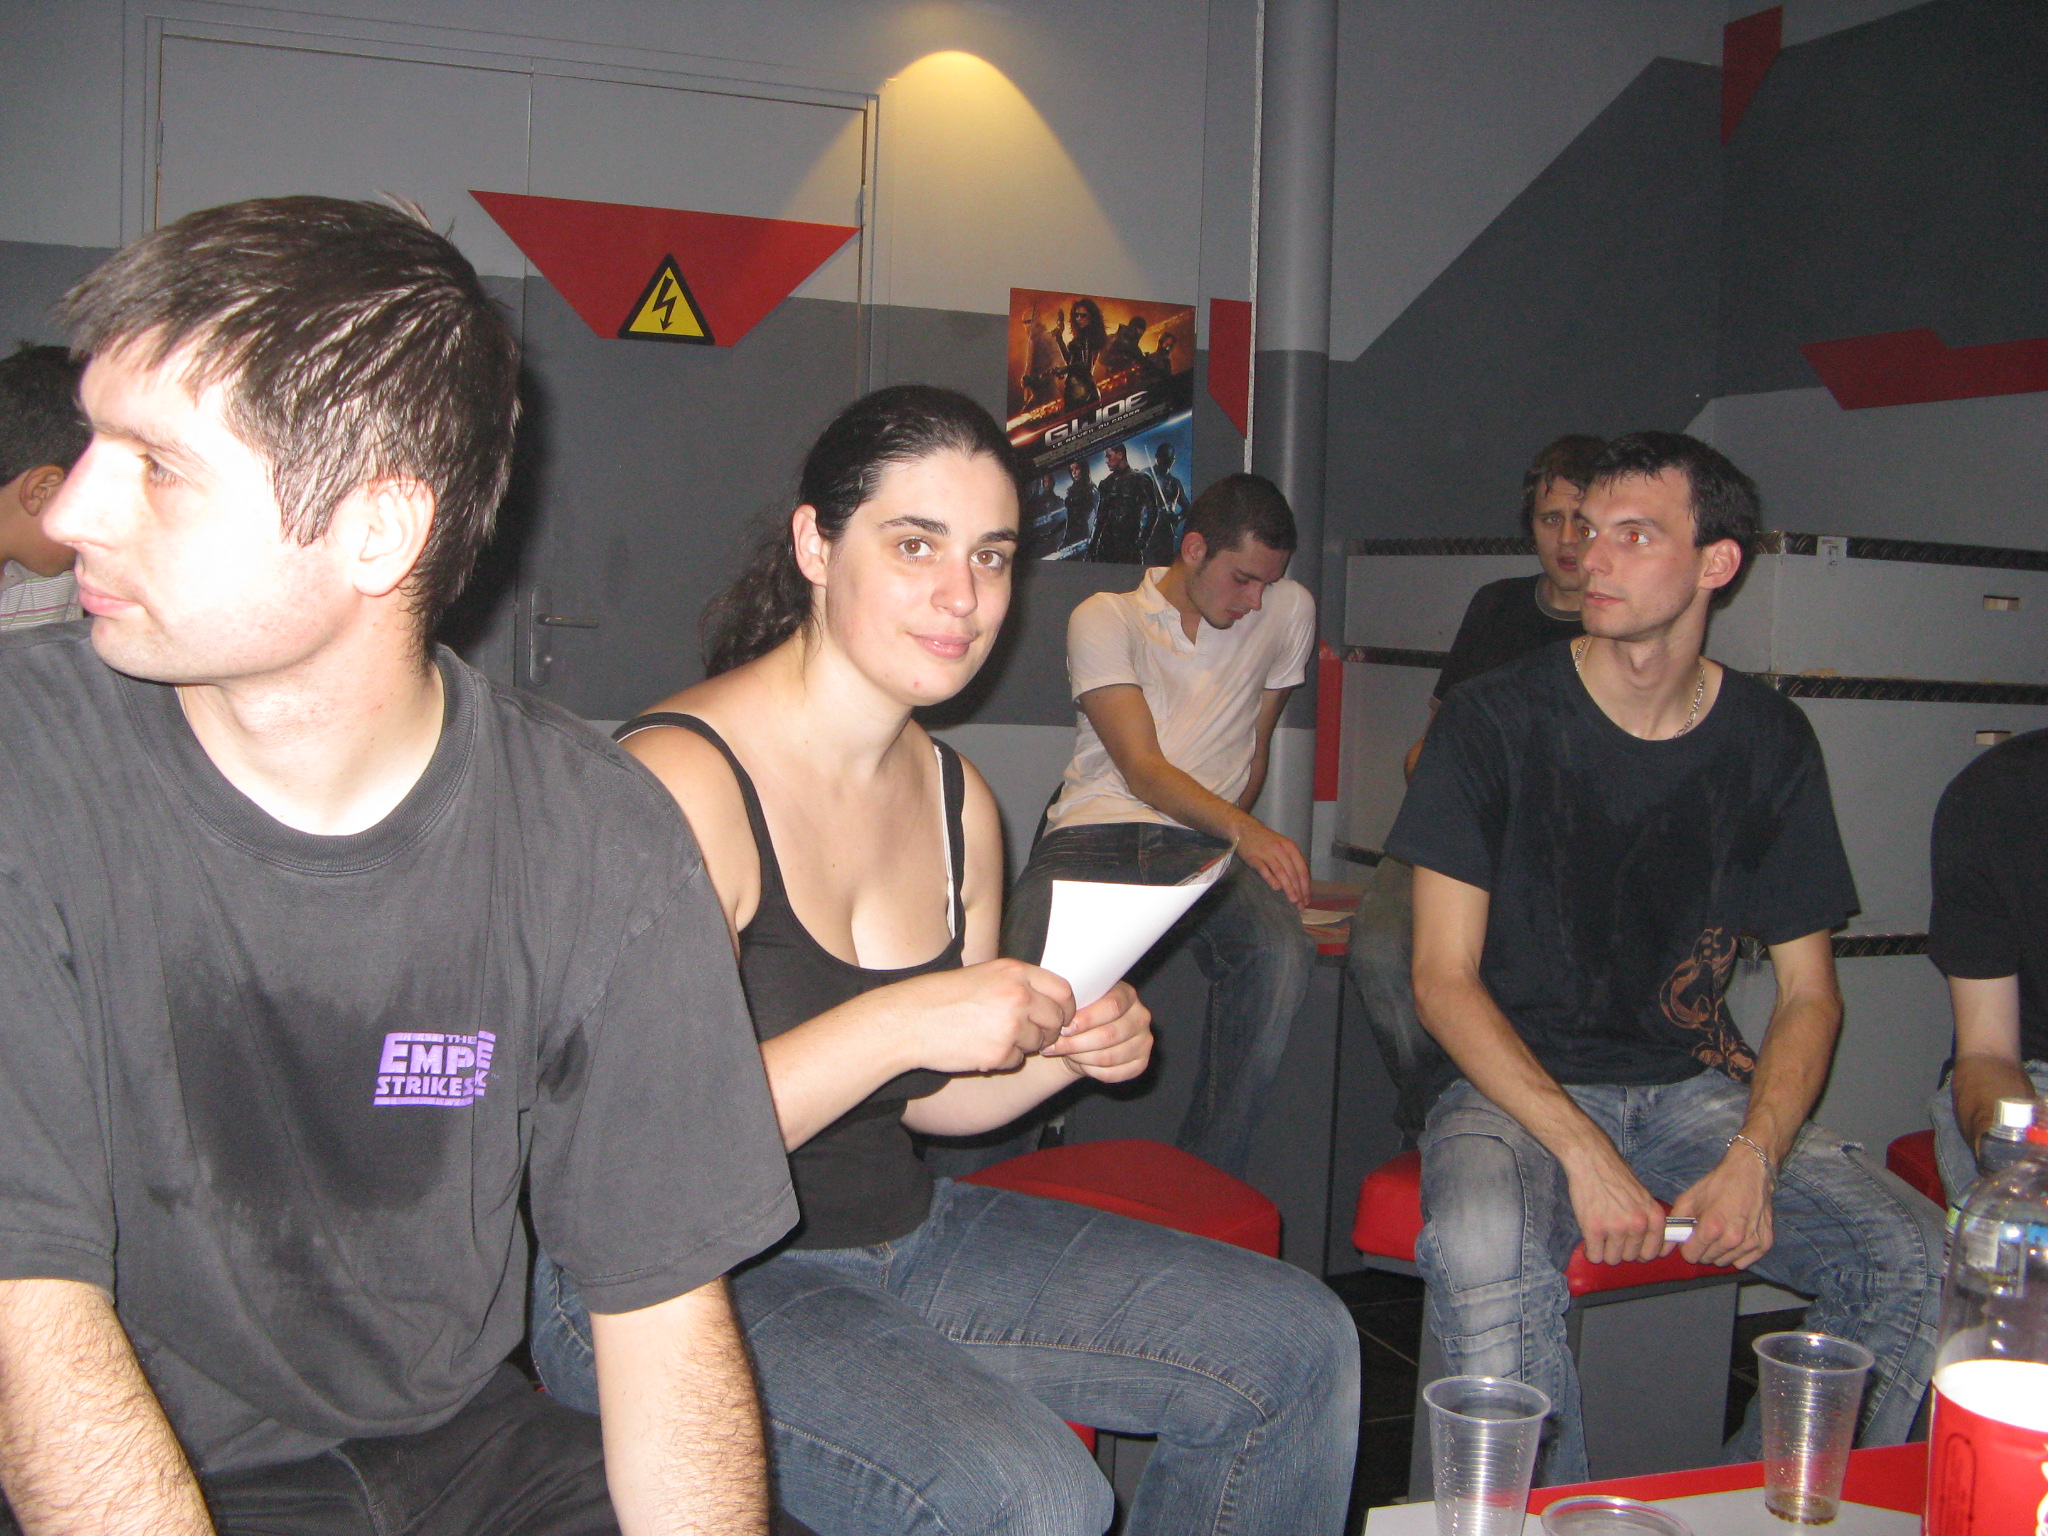 Photo 83 - Kardass, Kenda, will-jacen, Anakin07 et Alpha8